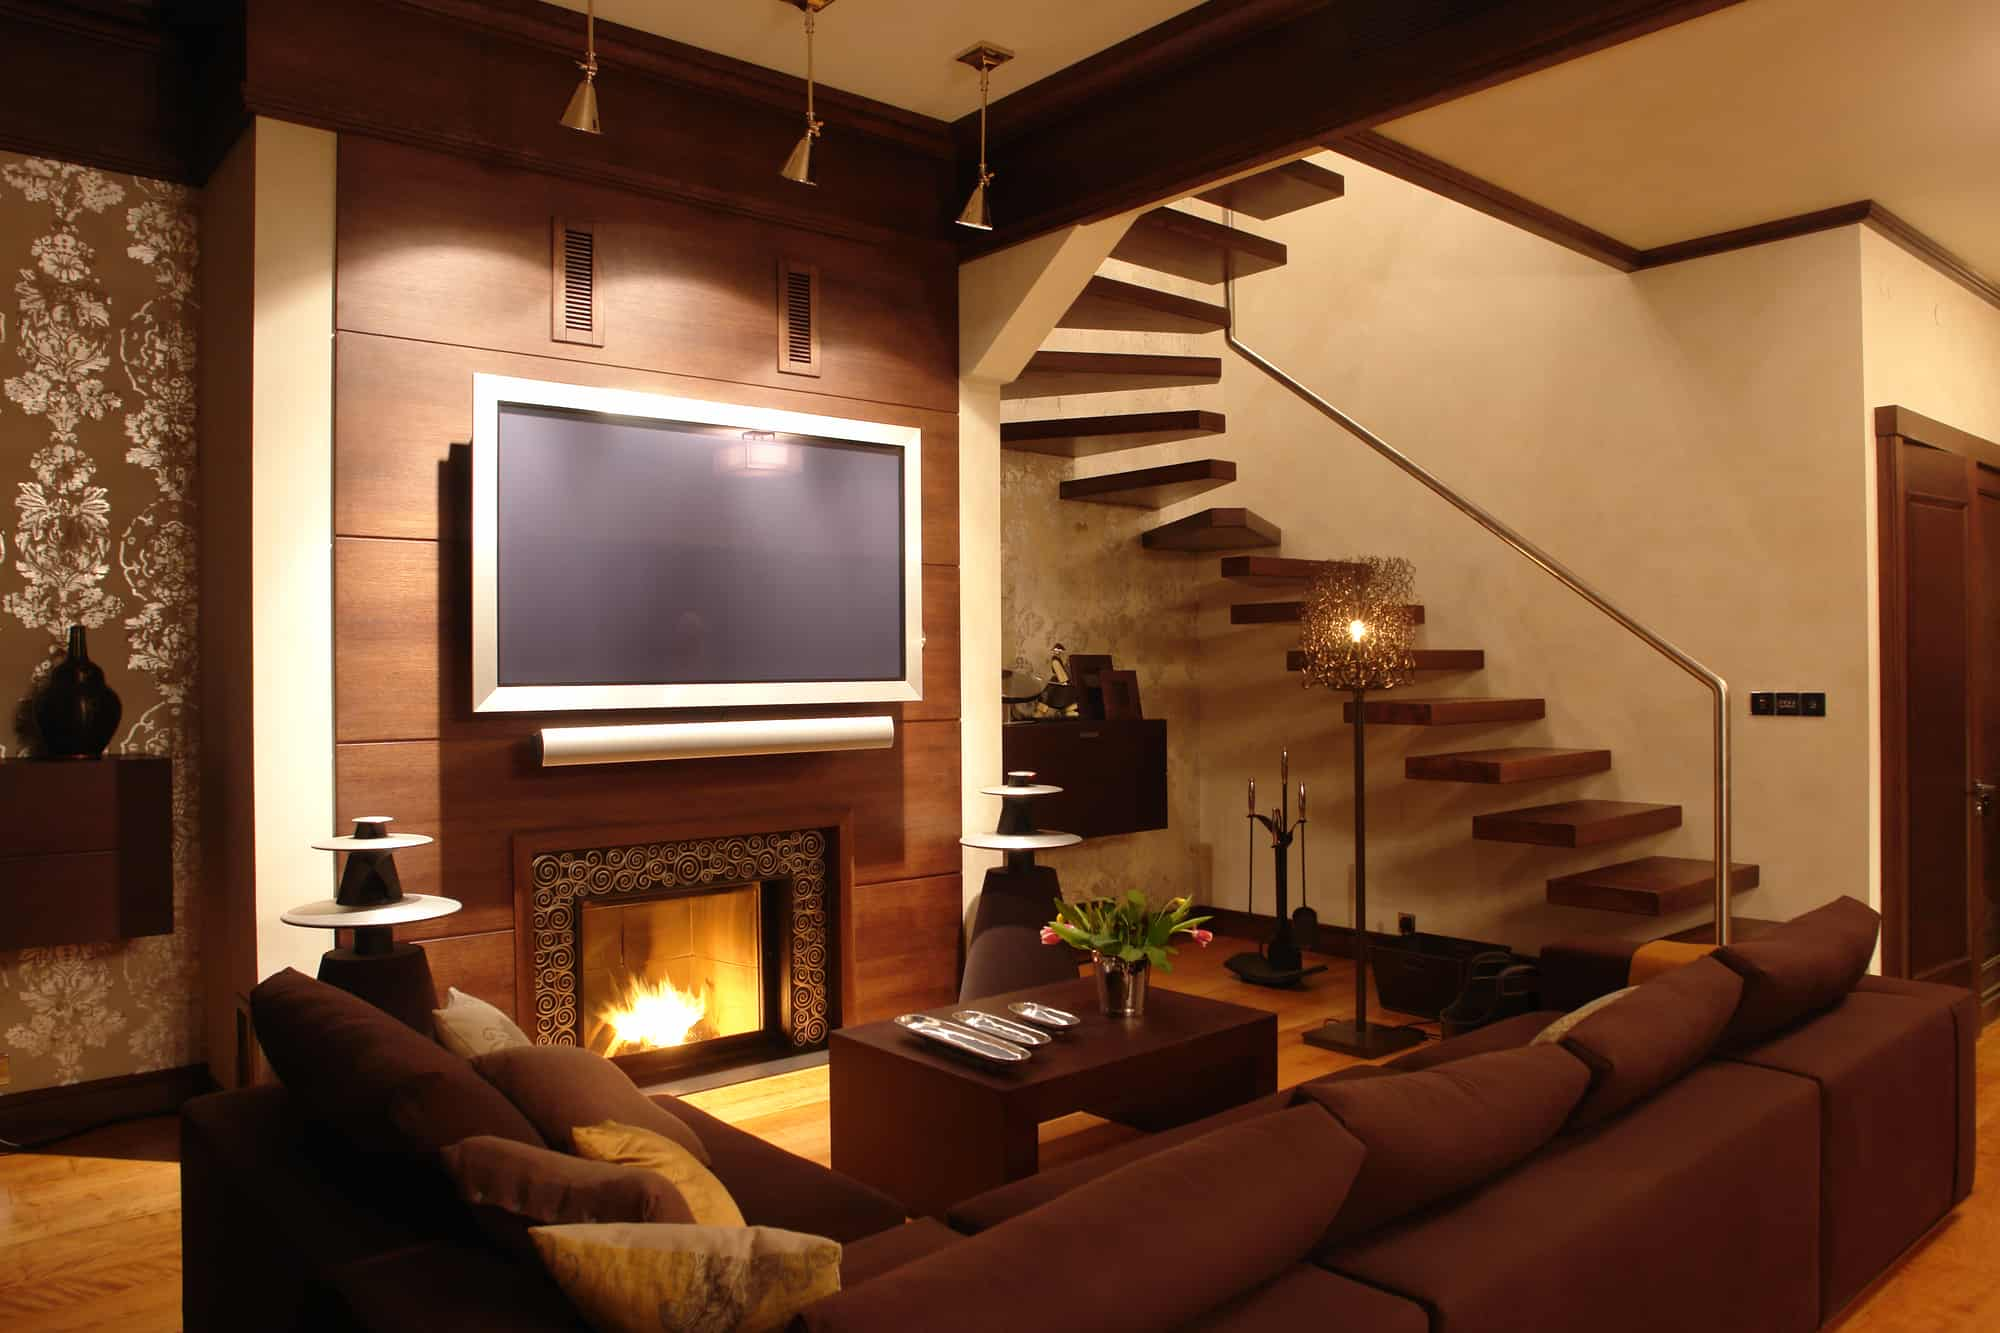 Downstairs living room with view of television that has fire retardants inside